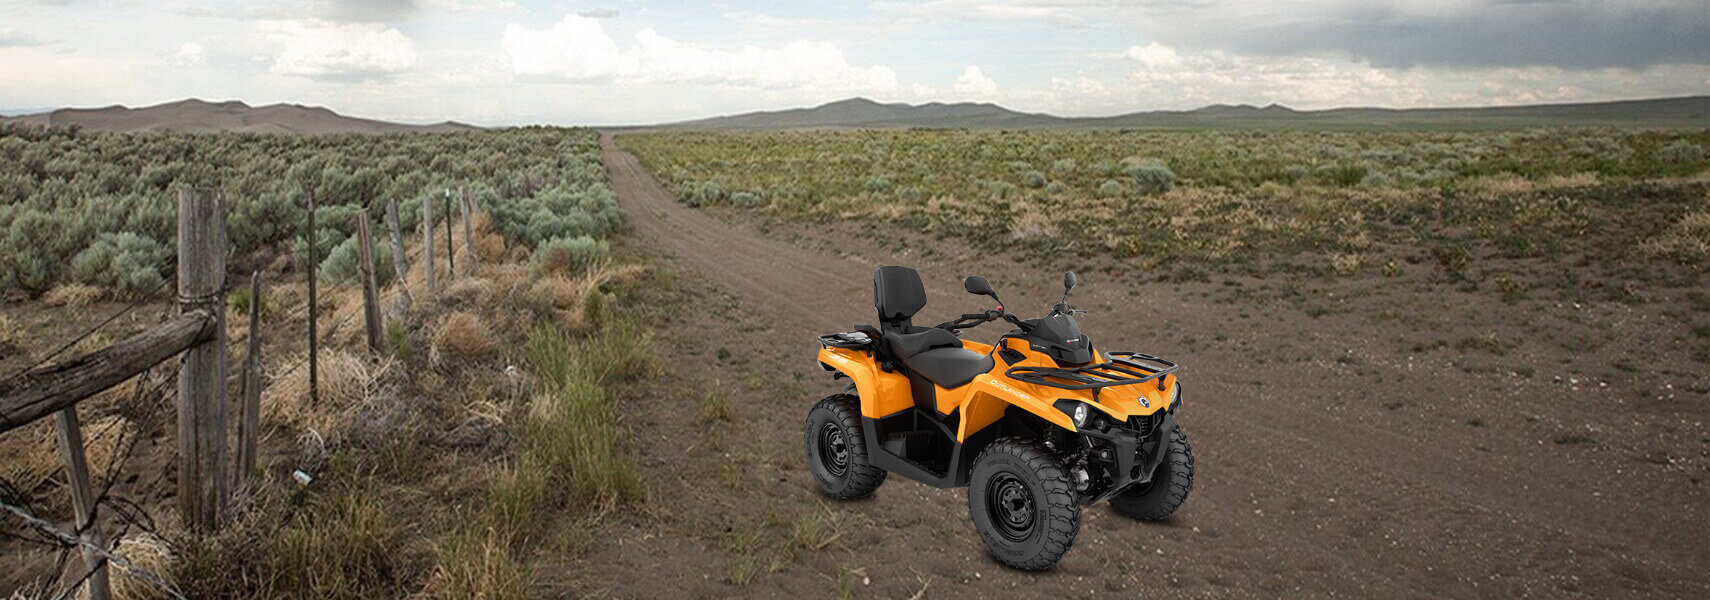 Can-Am ATV - 2020 OUTLANDER MAX DPS 450 / 570 T